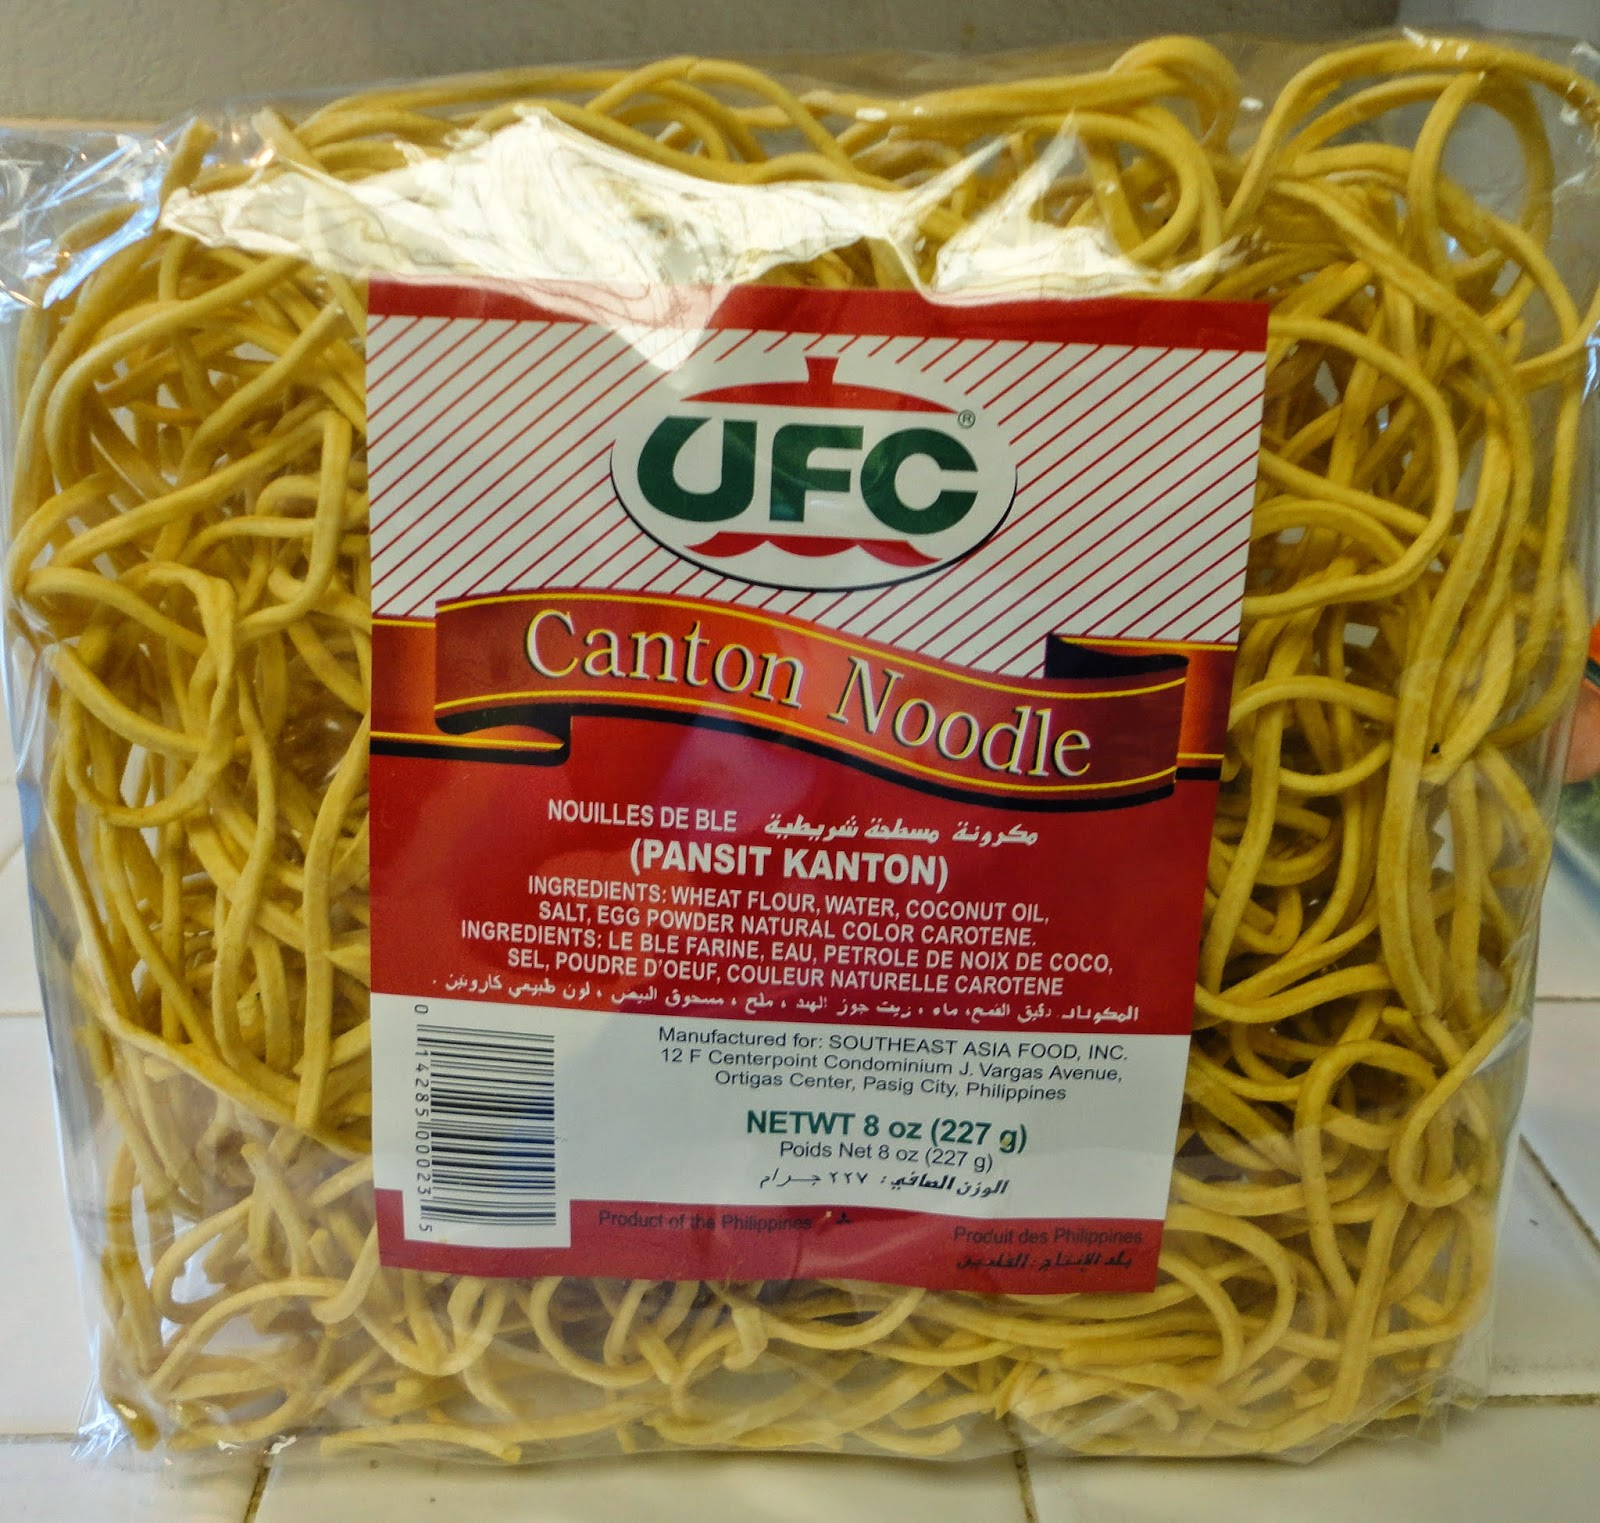 Why are some brands of Asian noodles really yellow? Is this coloring ...